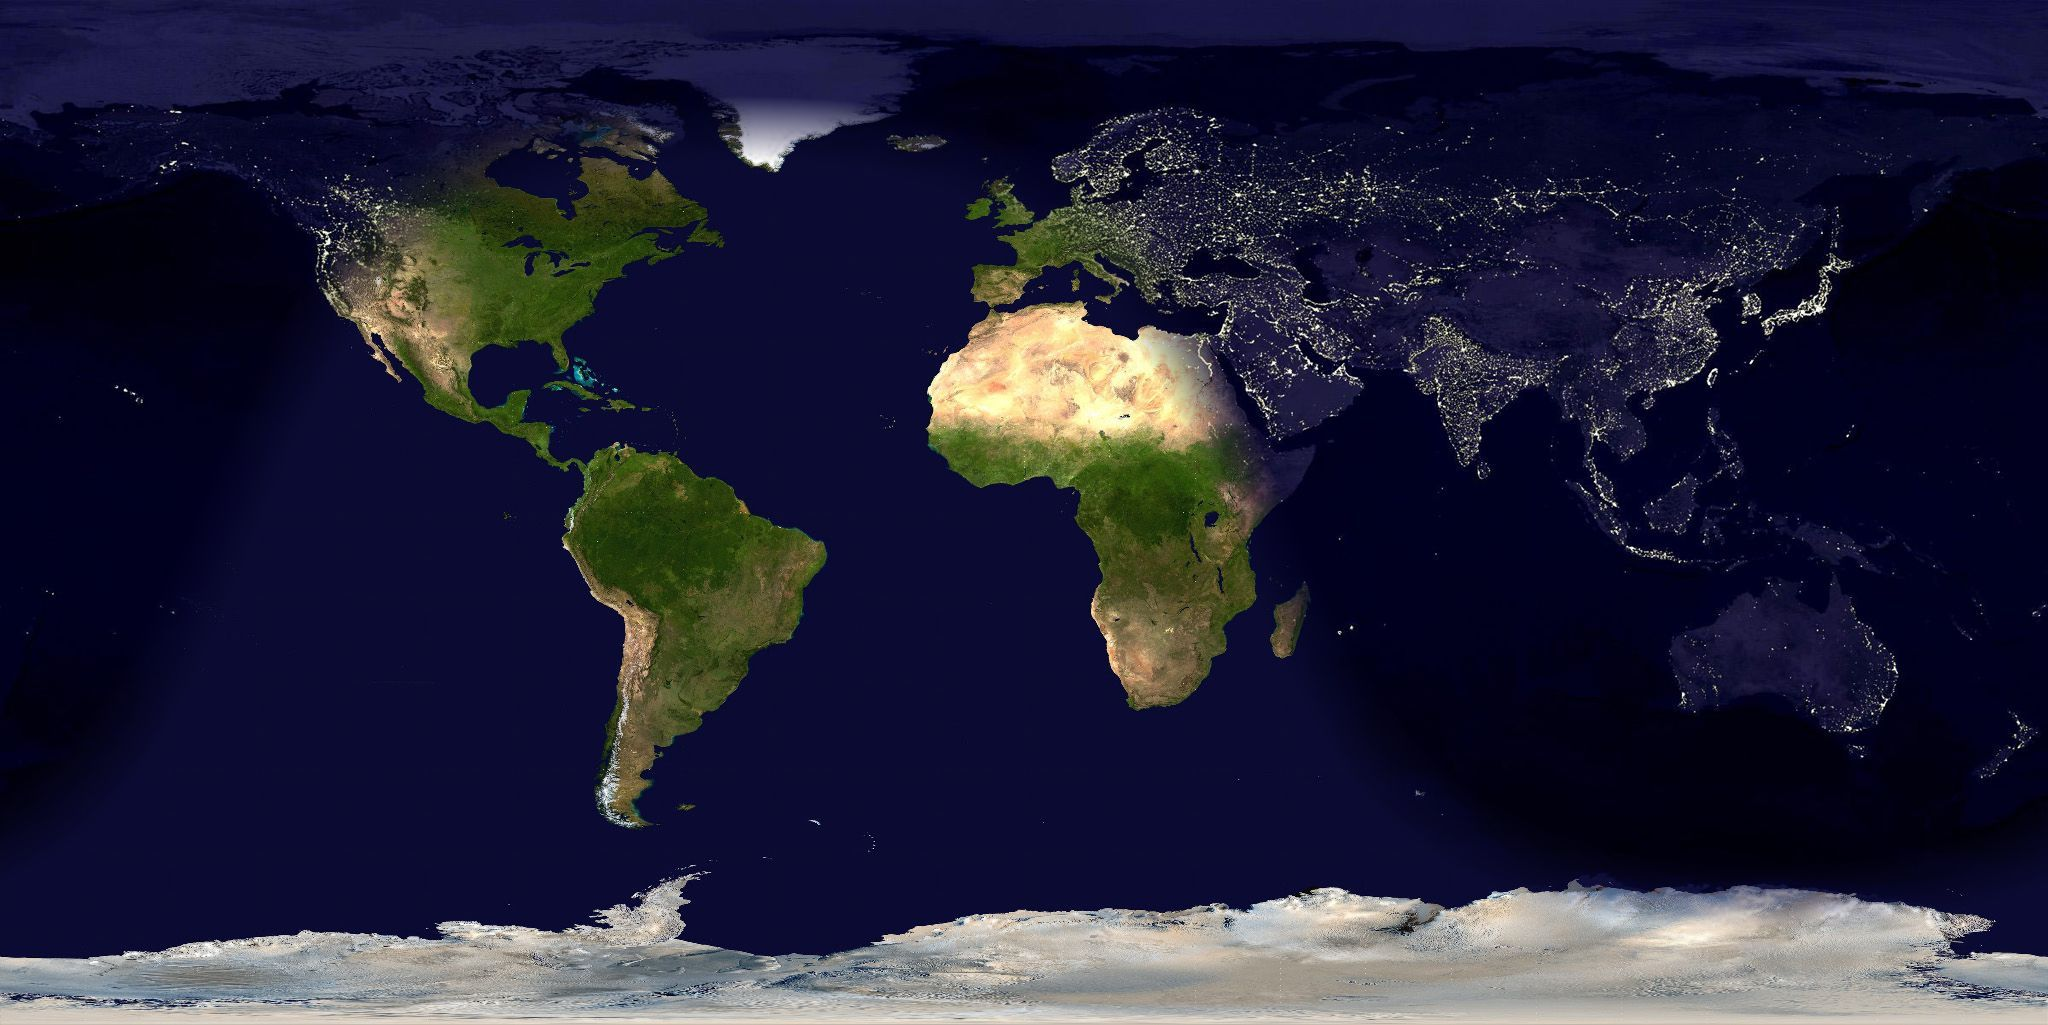 Map In Earth%0A A World Wide Total Daily Snow and Ice Cover Map with Color Coded Snow and  Ice Cover Over the Entire Earth